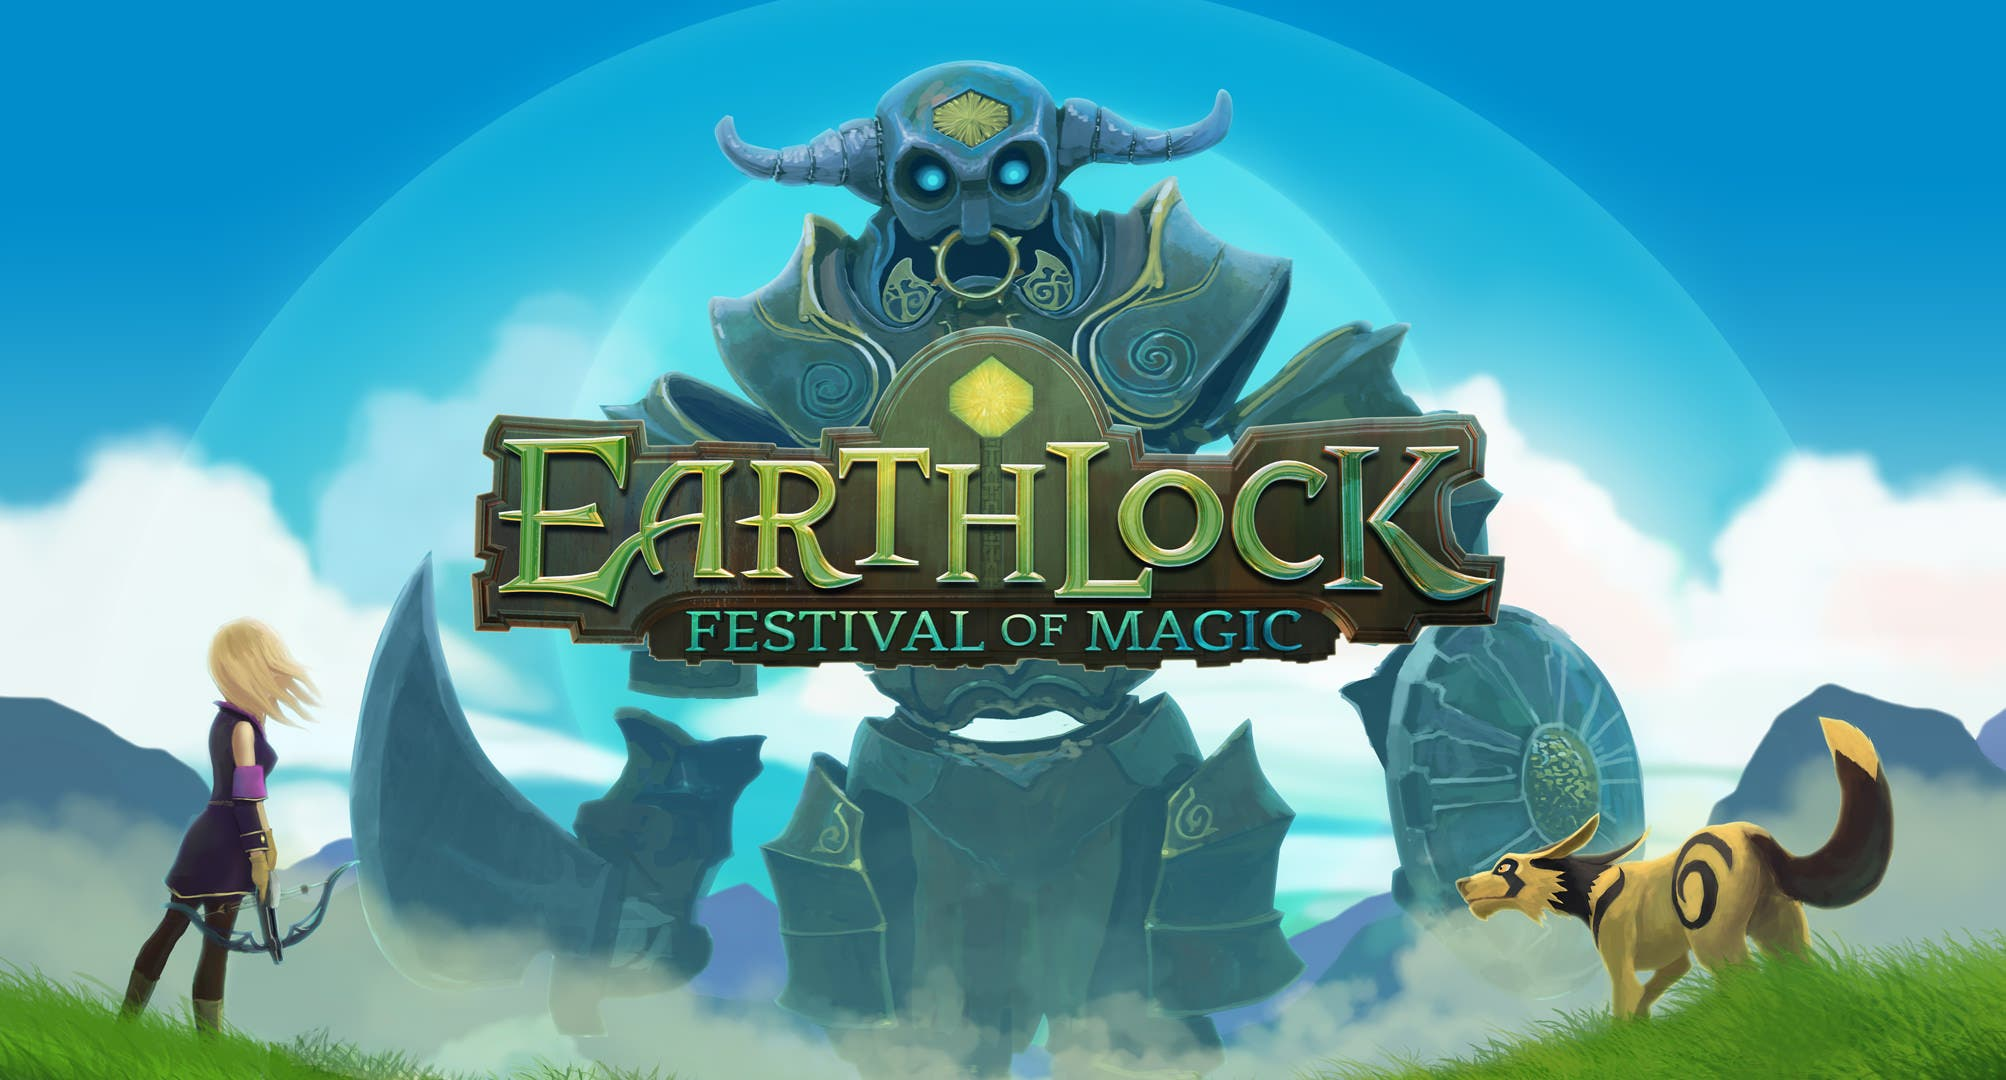 Echa un vistazo a este gameplay de Earthlock: Festival of Magic en Wii U